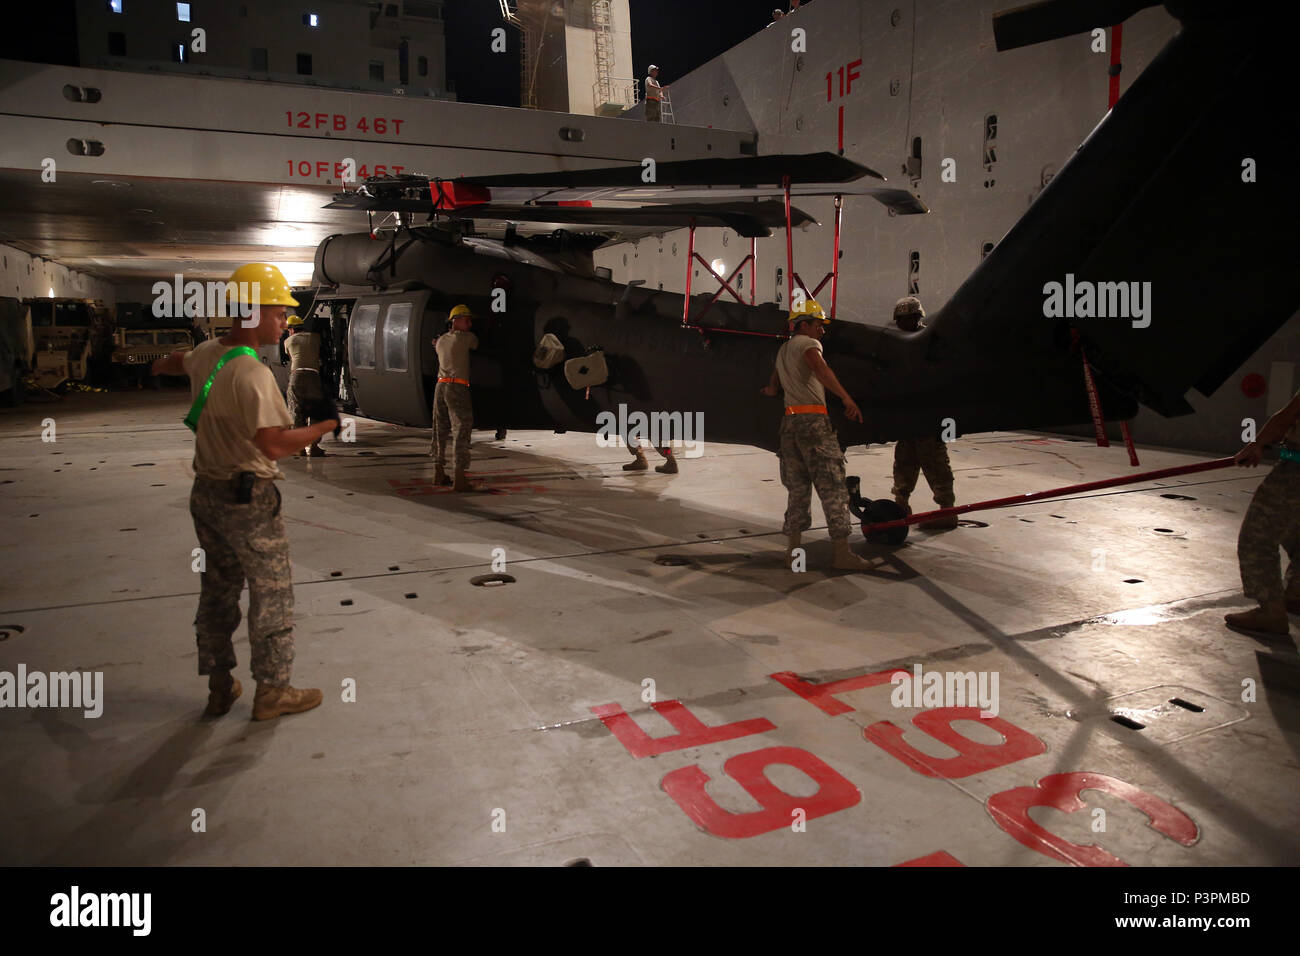 160712-N-IX266-017 SATTAHIP, Thailand—A UH-60 helicopter is positioned in the cargo deck of general purpose, heavy lift ship MV OCEAN GLORY during a backload of equipment at Chuk Samet, here, from exercise Hanuman Guardian, July 12. Military Sealift Command's contracted voyage-charter MV OCEAN GLORY recently conducted a backload of about 250 items in Thailand as part of U.S. Army Pacific's mobility operation PACIFIC PATHWAYS 16-2. (U.S. Navy photo by Grady T. Fontana/Released) - Stock Image